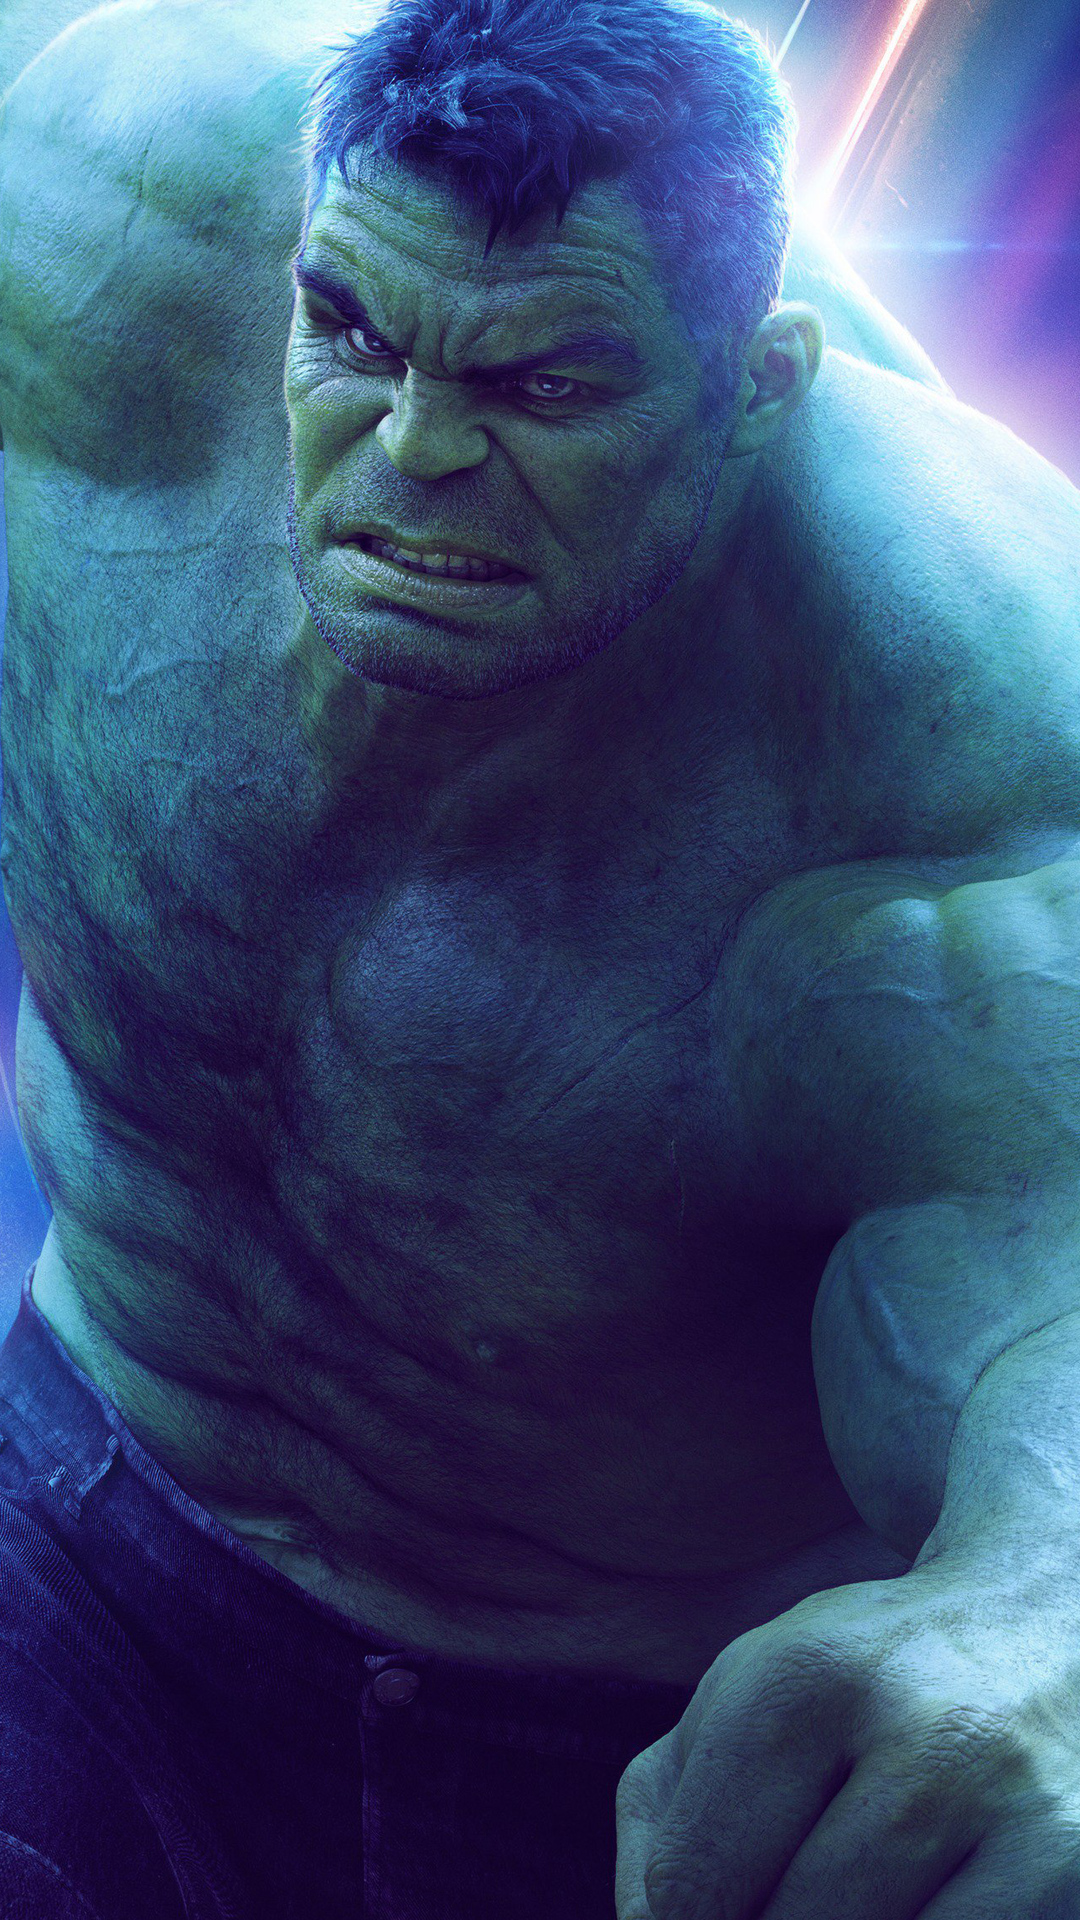 Hulk Infinity War - Download 4k wallpapers for iPhone and ...